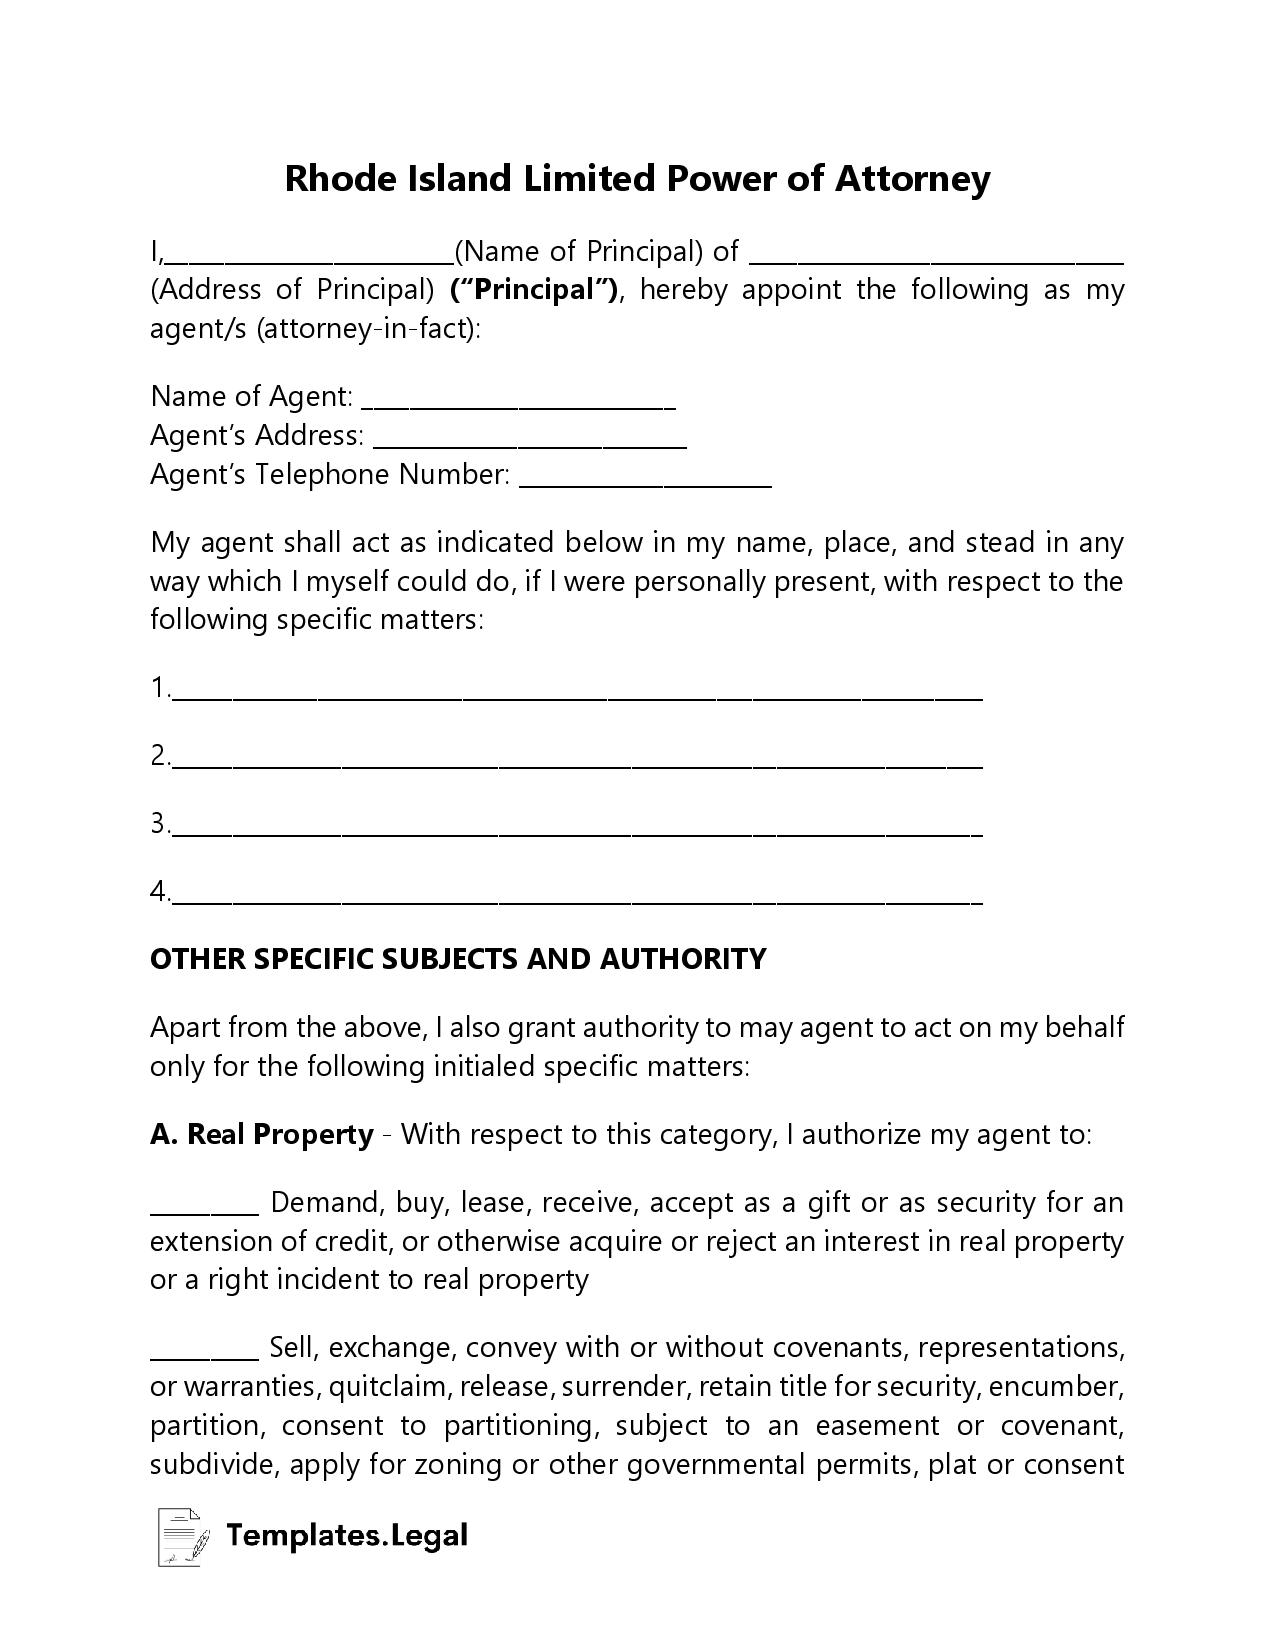 Rhode Island Limited Power of Attorney - Templates.Legal